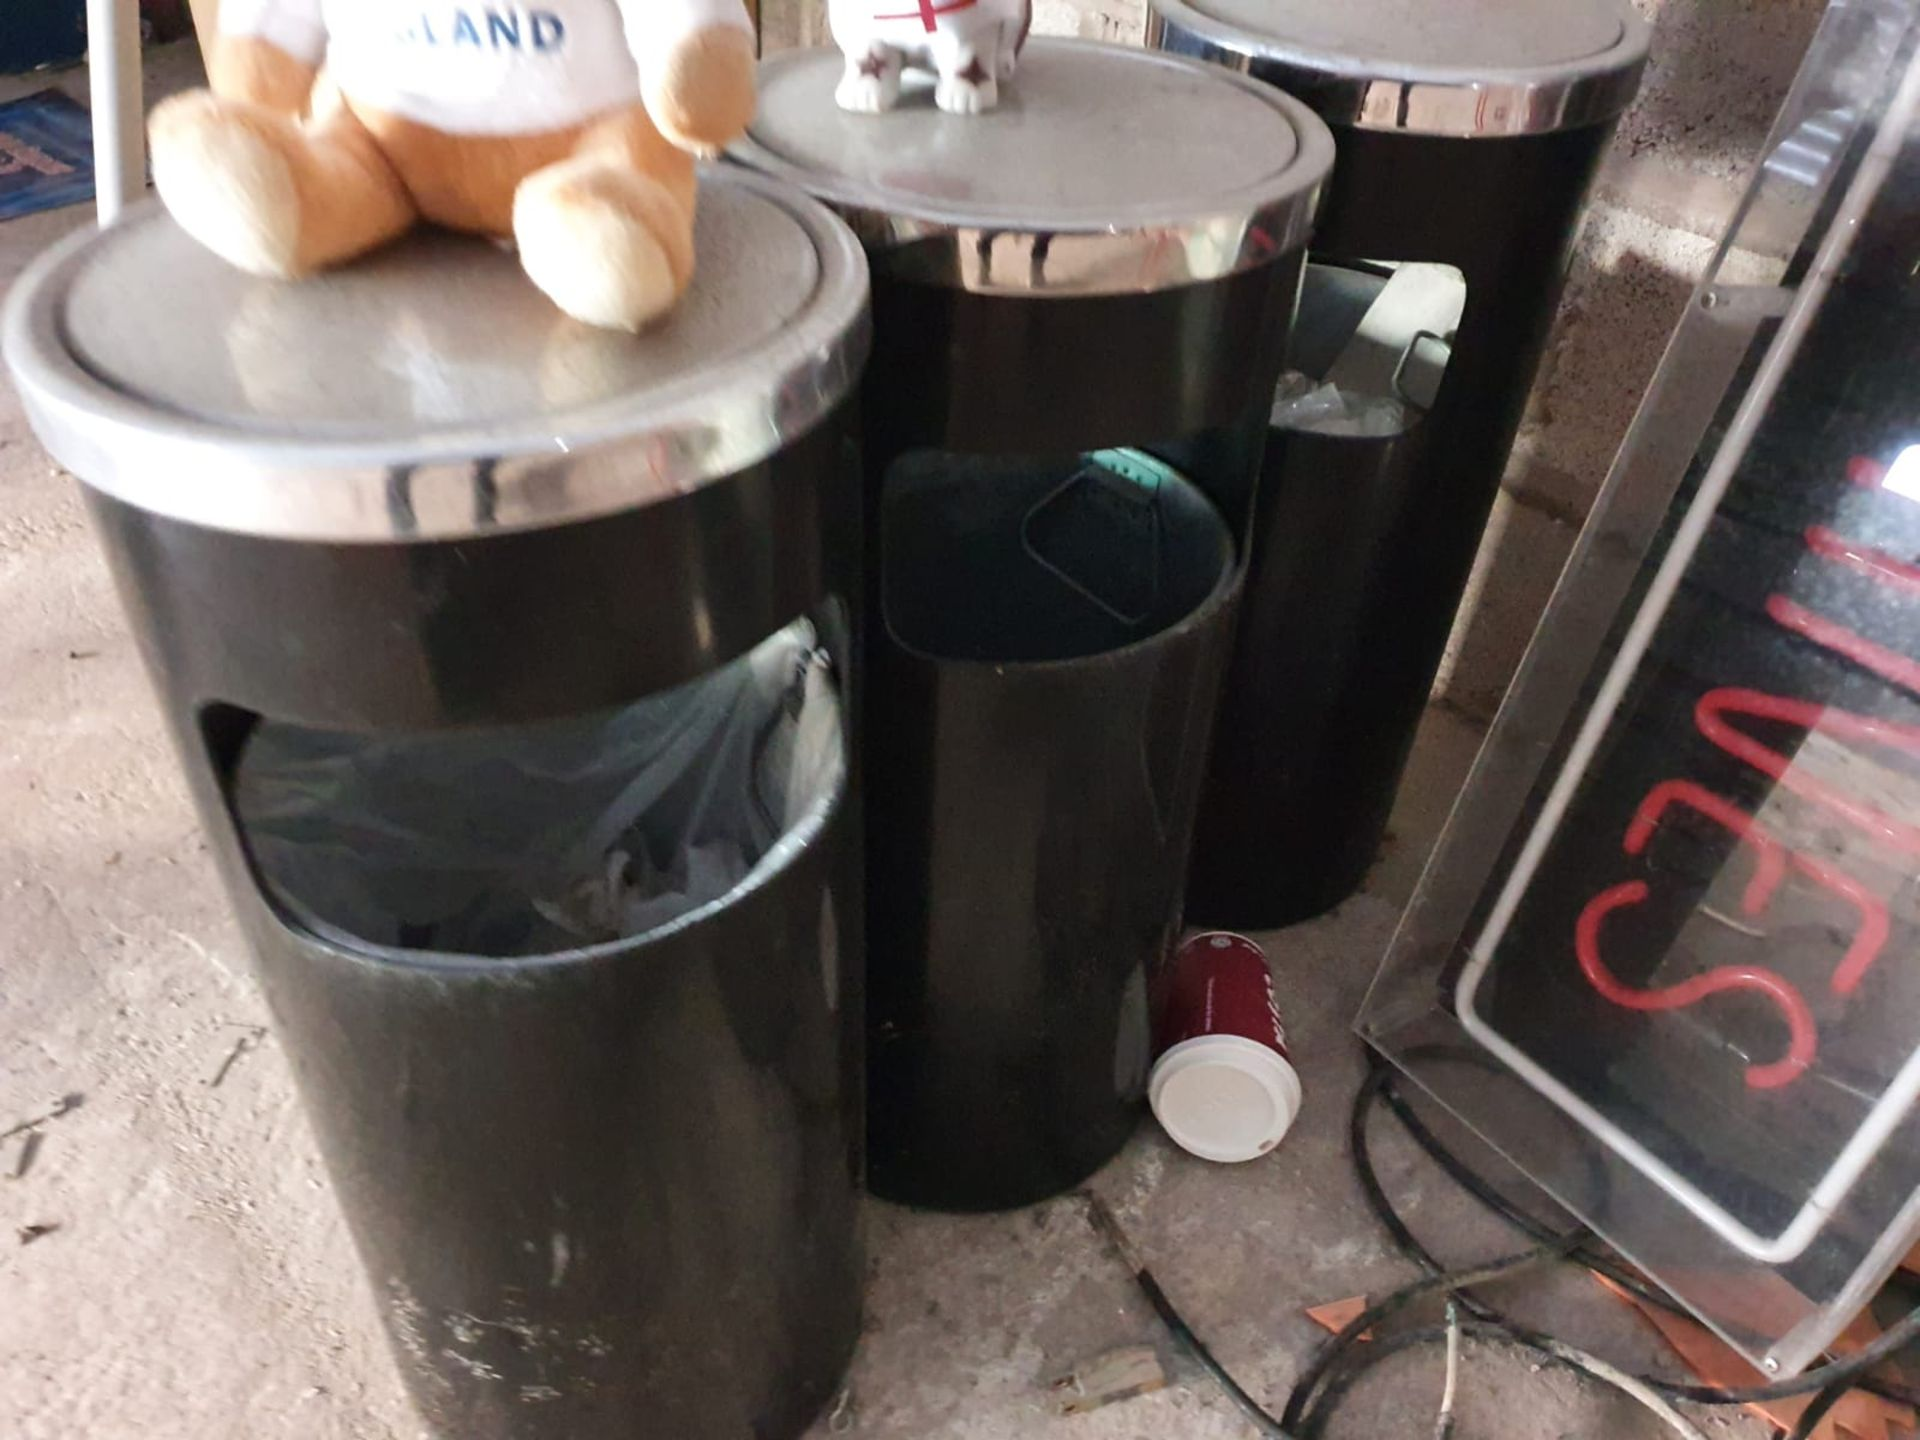 Lot 7553 - 3 x Waste Bins in Black With Chrome Tops - CL515 - Height 60 cms x Diameter 26 cms - Location: Lymm,